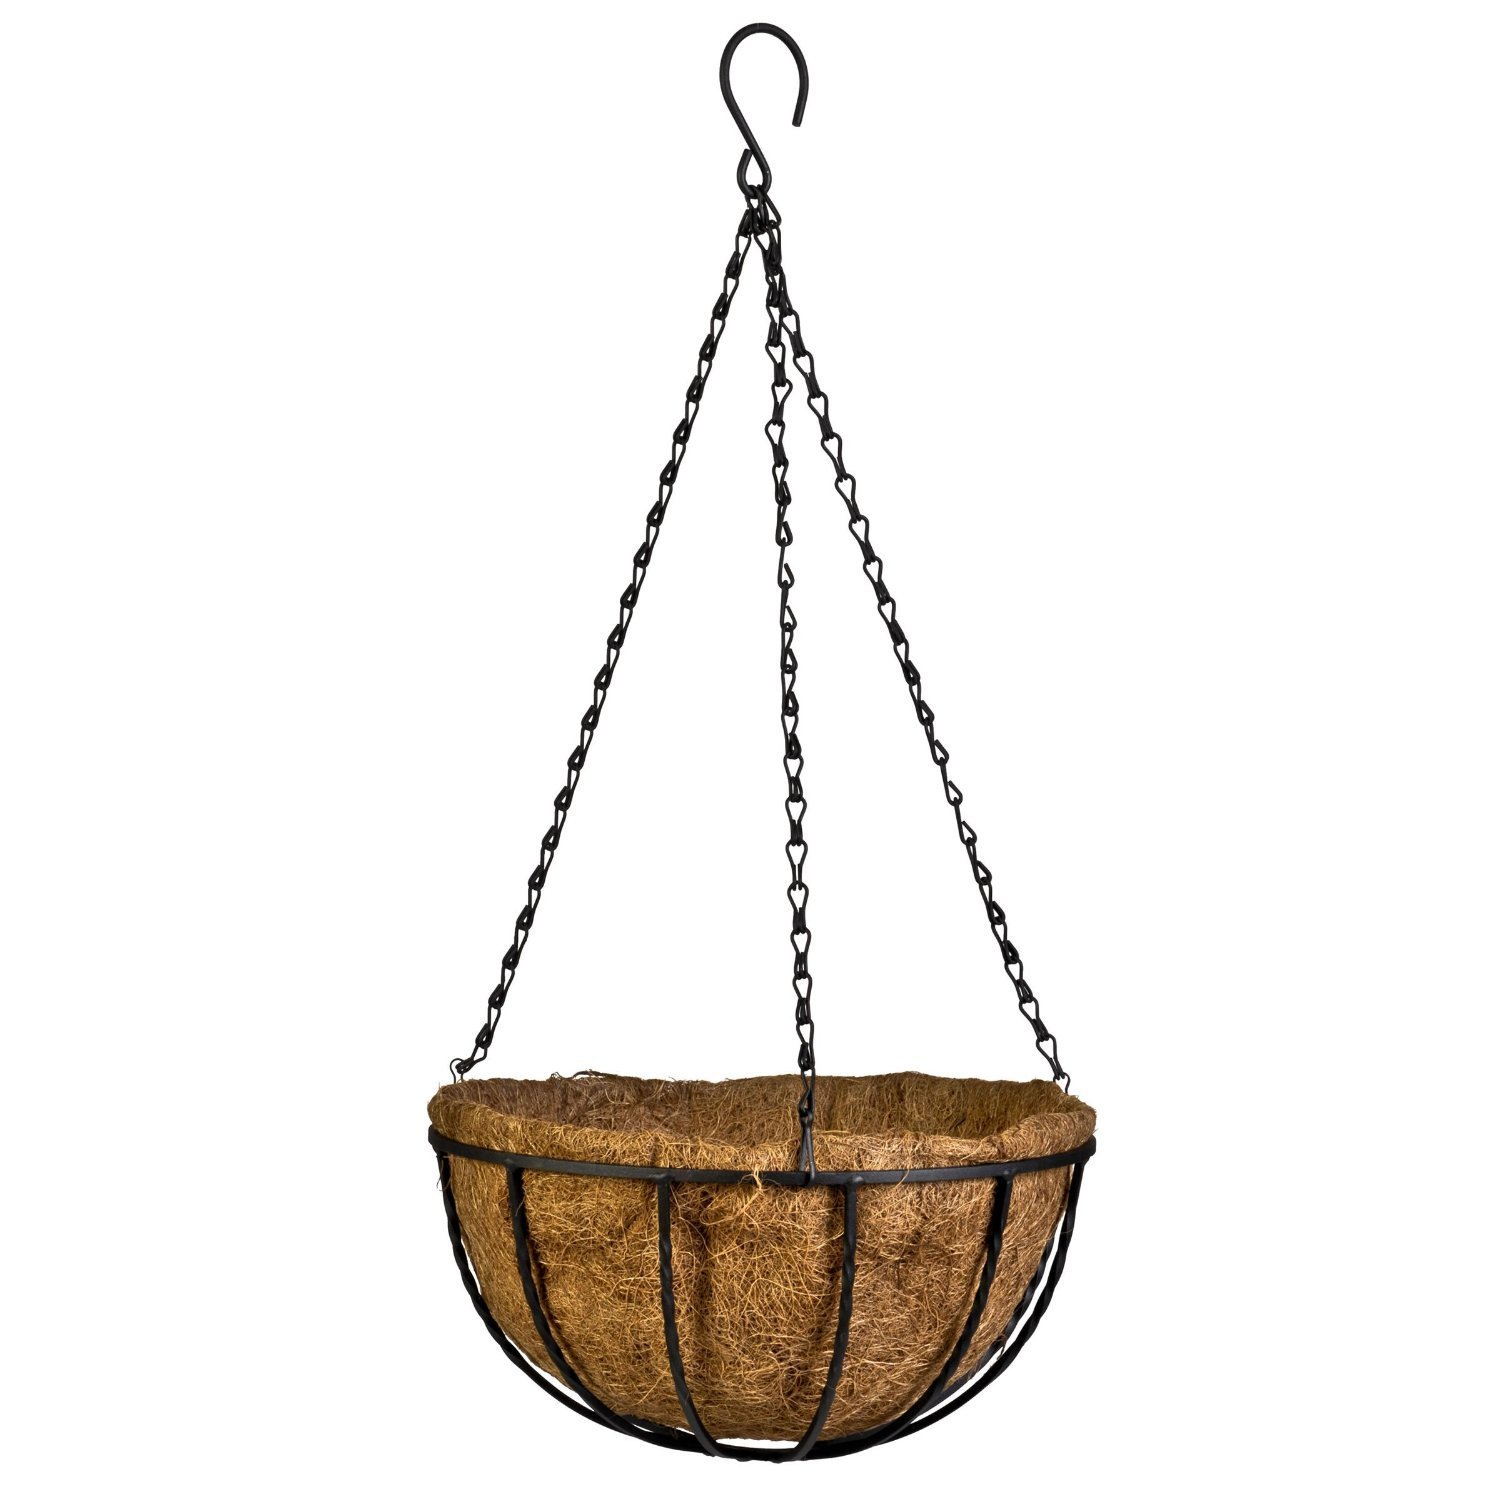 Kingbuy Hanging Basket Planter Metal with Coconut Coir Liner Wire Plant Holder with Garden Decorations for Porch Pots Hanger Home Garden Decoration Indoor Outdoor Watering Plant Flower Pot-12inch